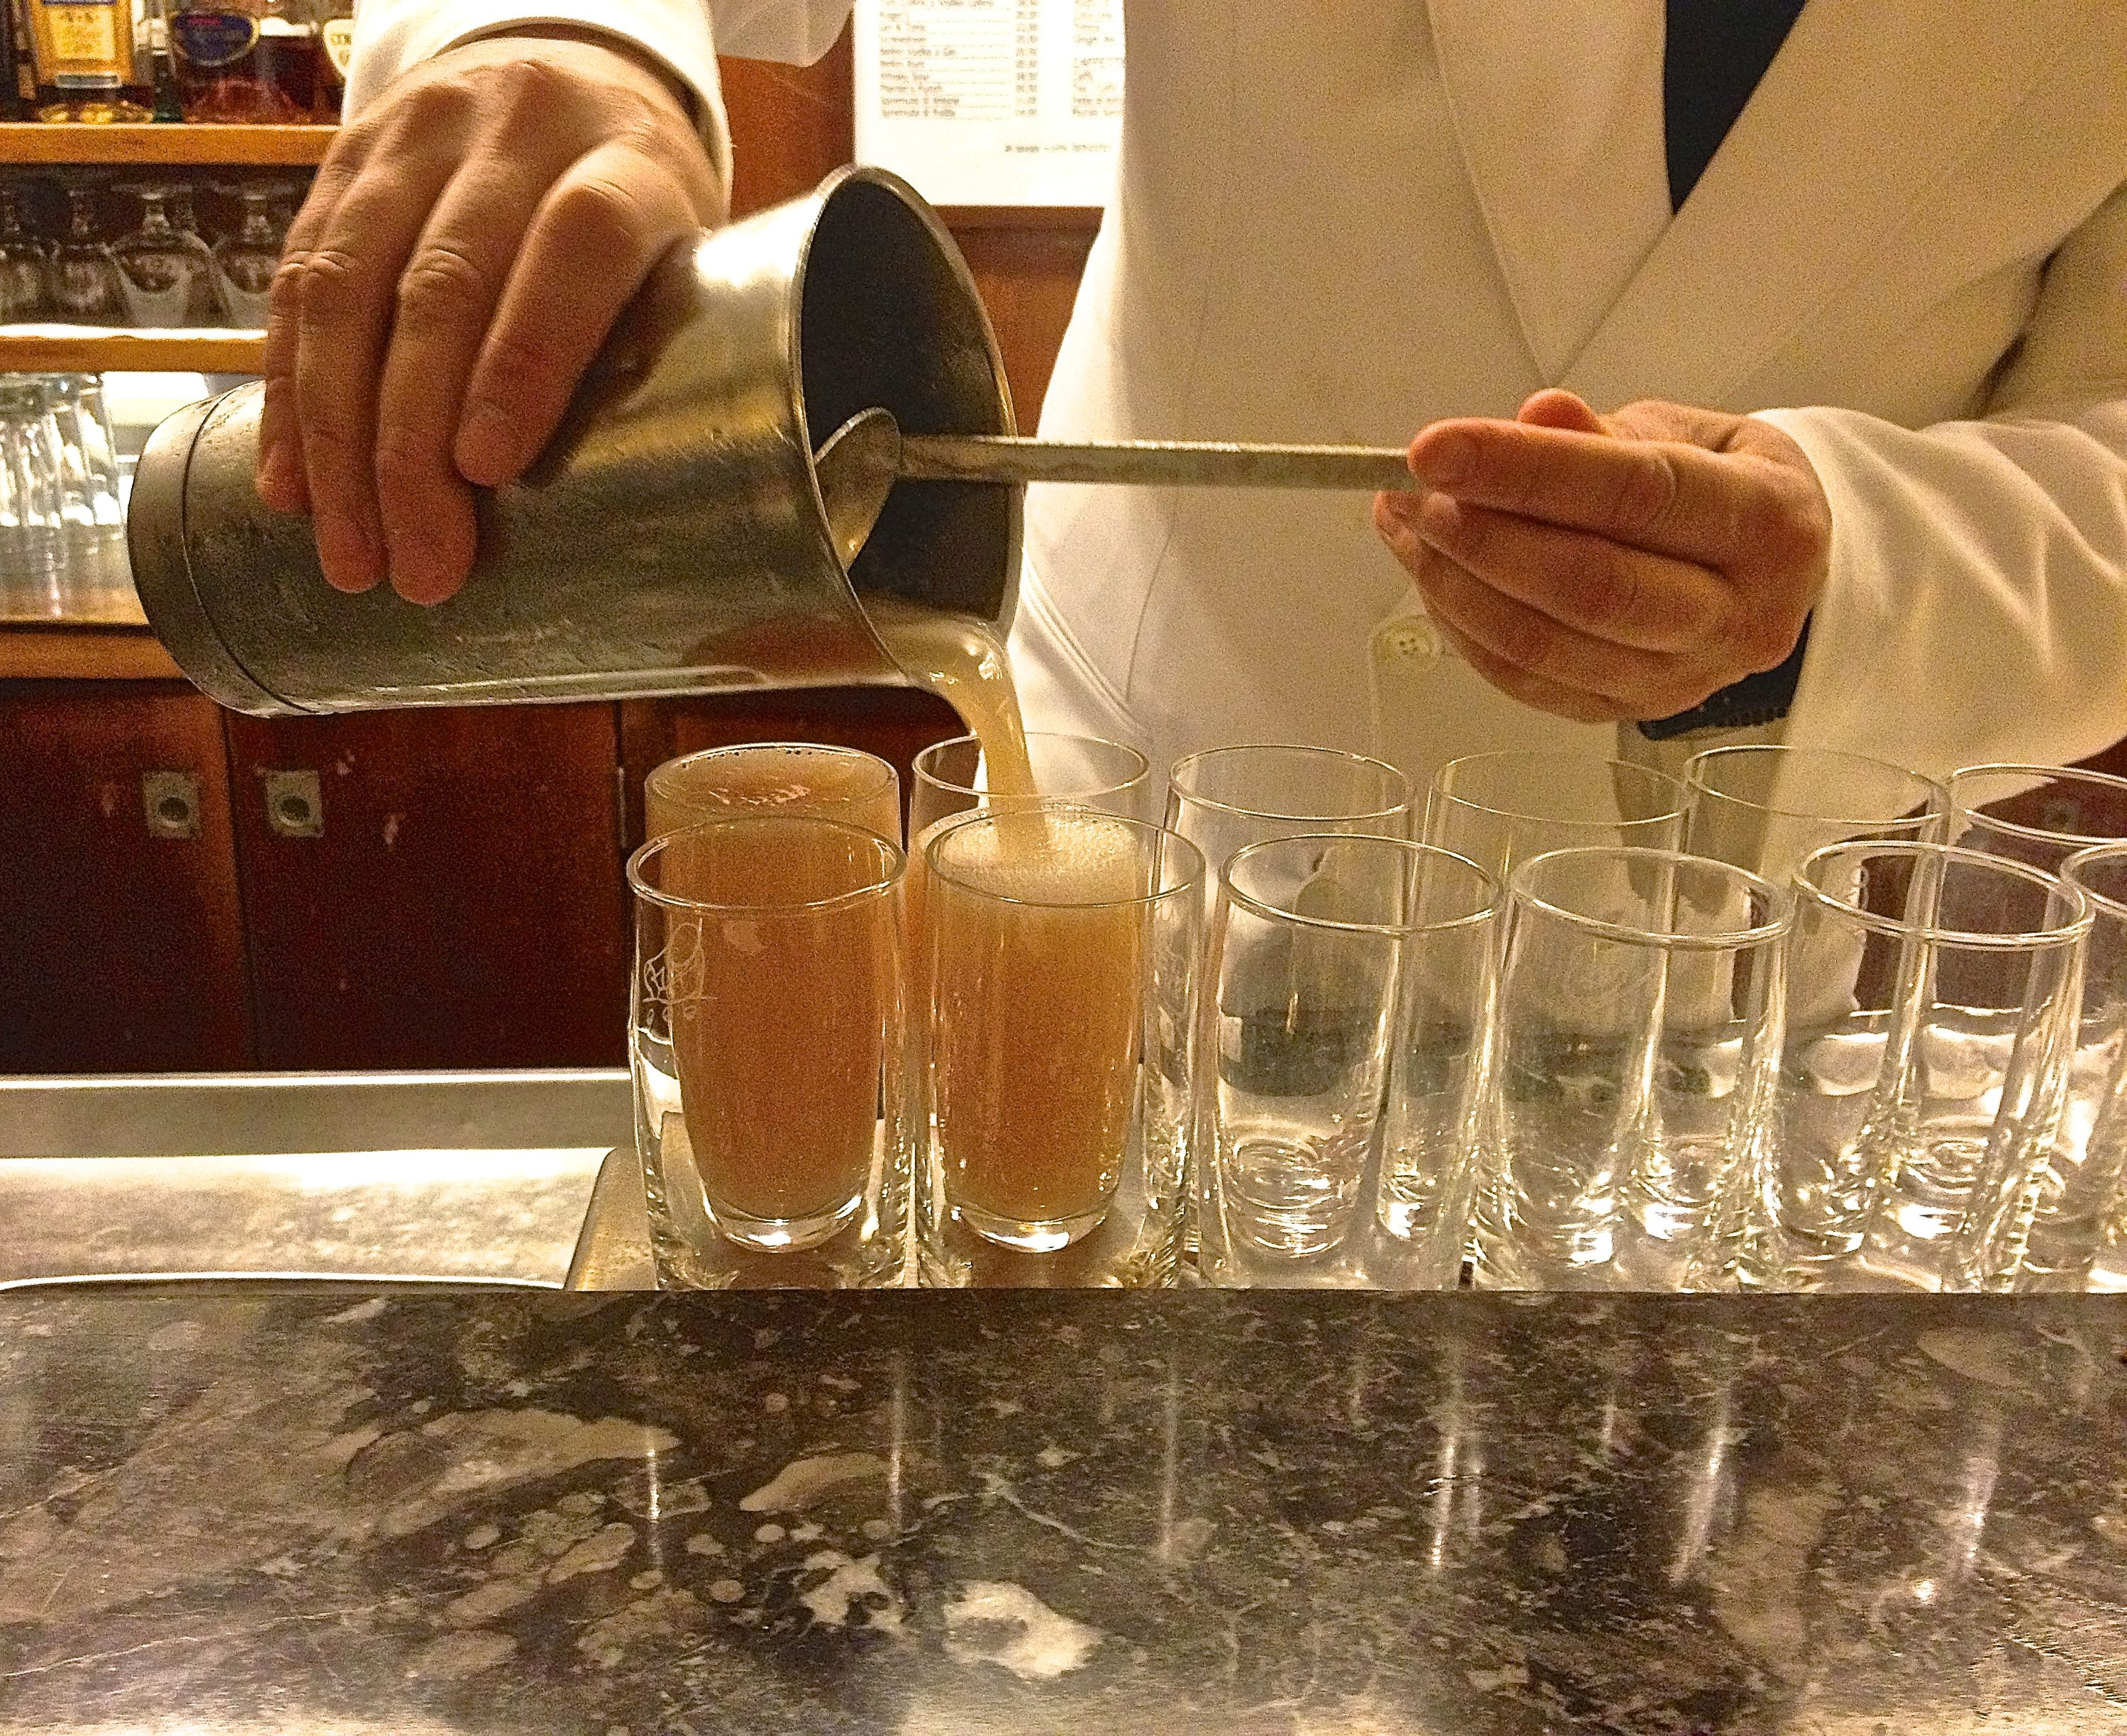 The Bellini production line at Harry's Bar, Venice